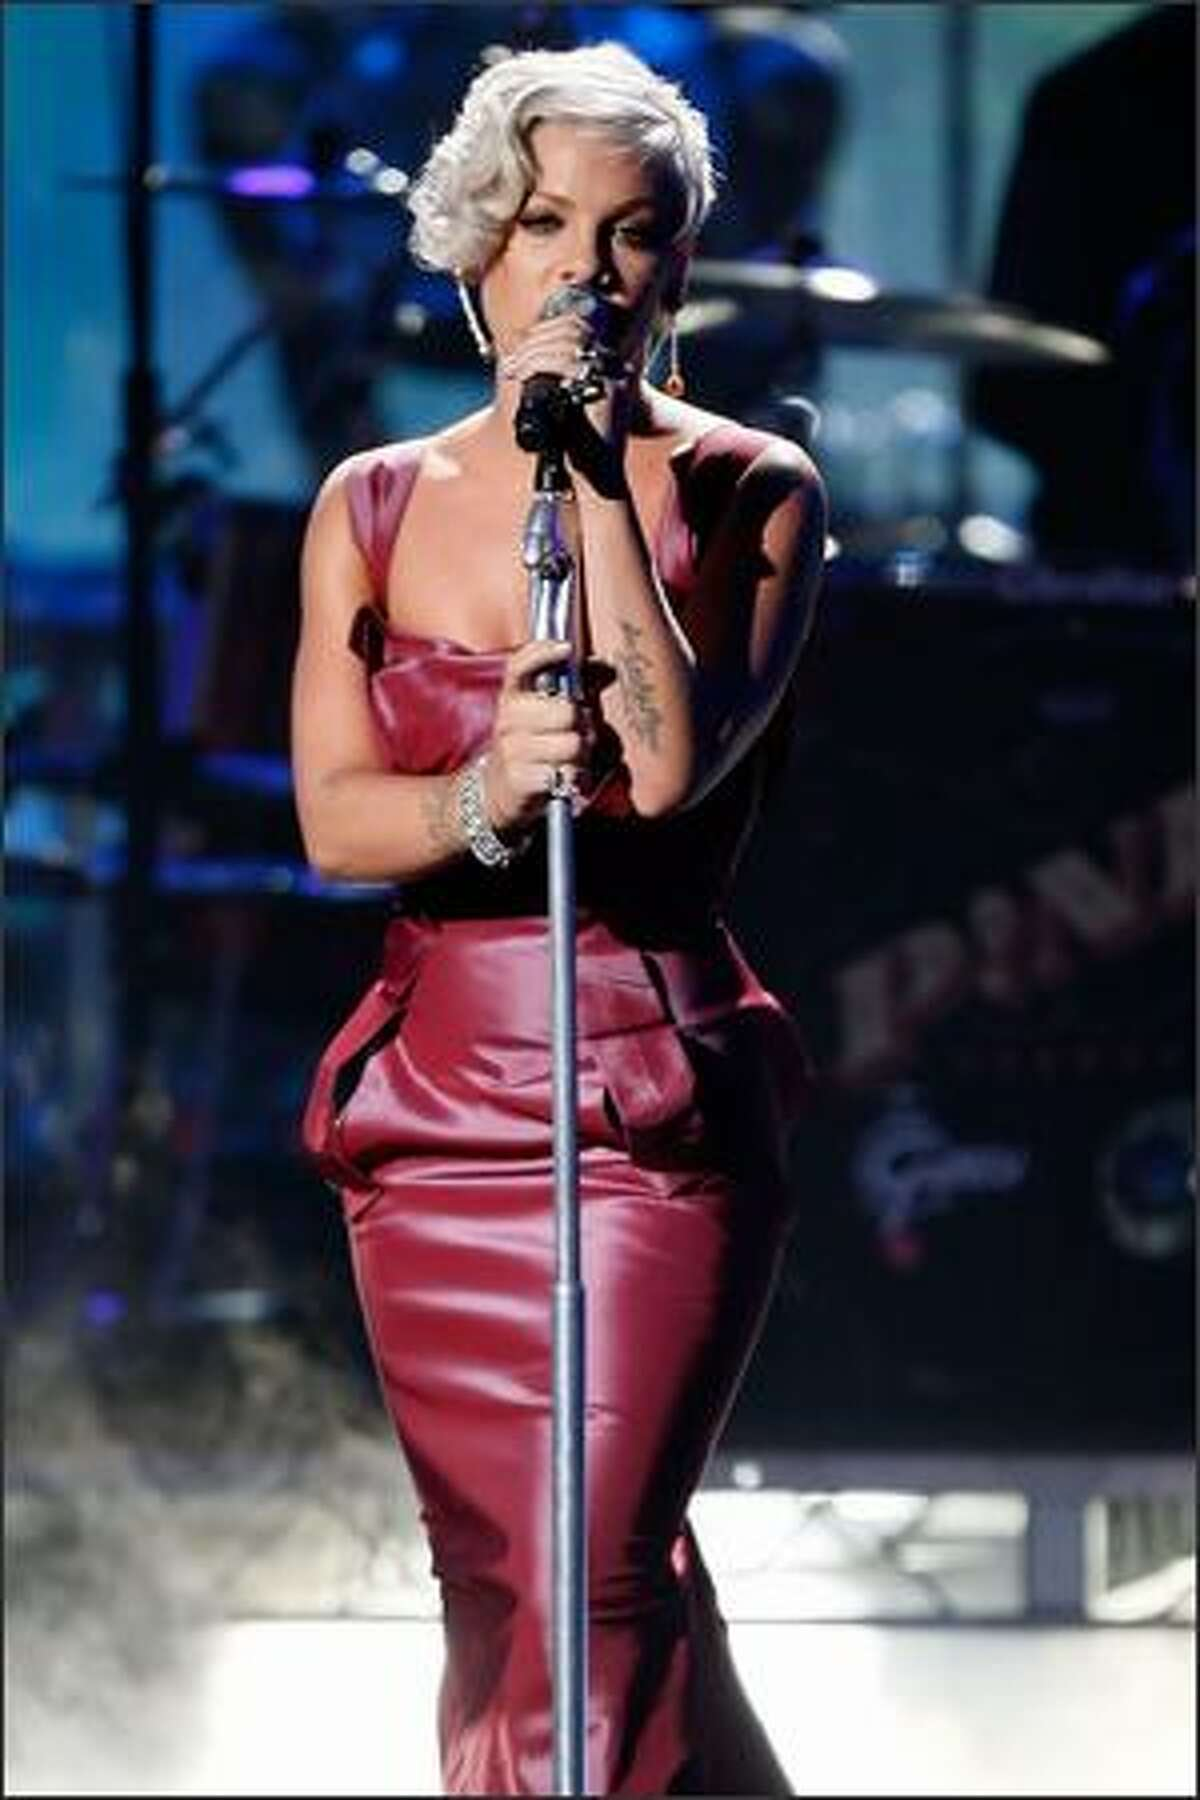 Singer Pink performs during the 2008 American Music Awards held at the Nokia Theatre in Los Angeles on Sunday, Nov. 23.